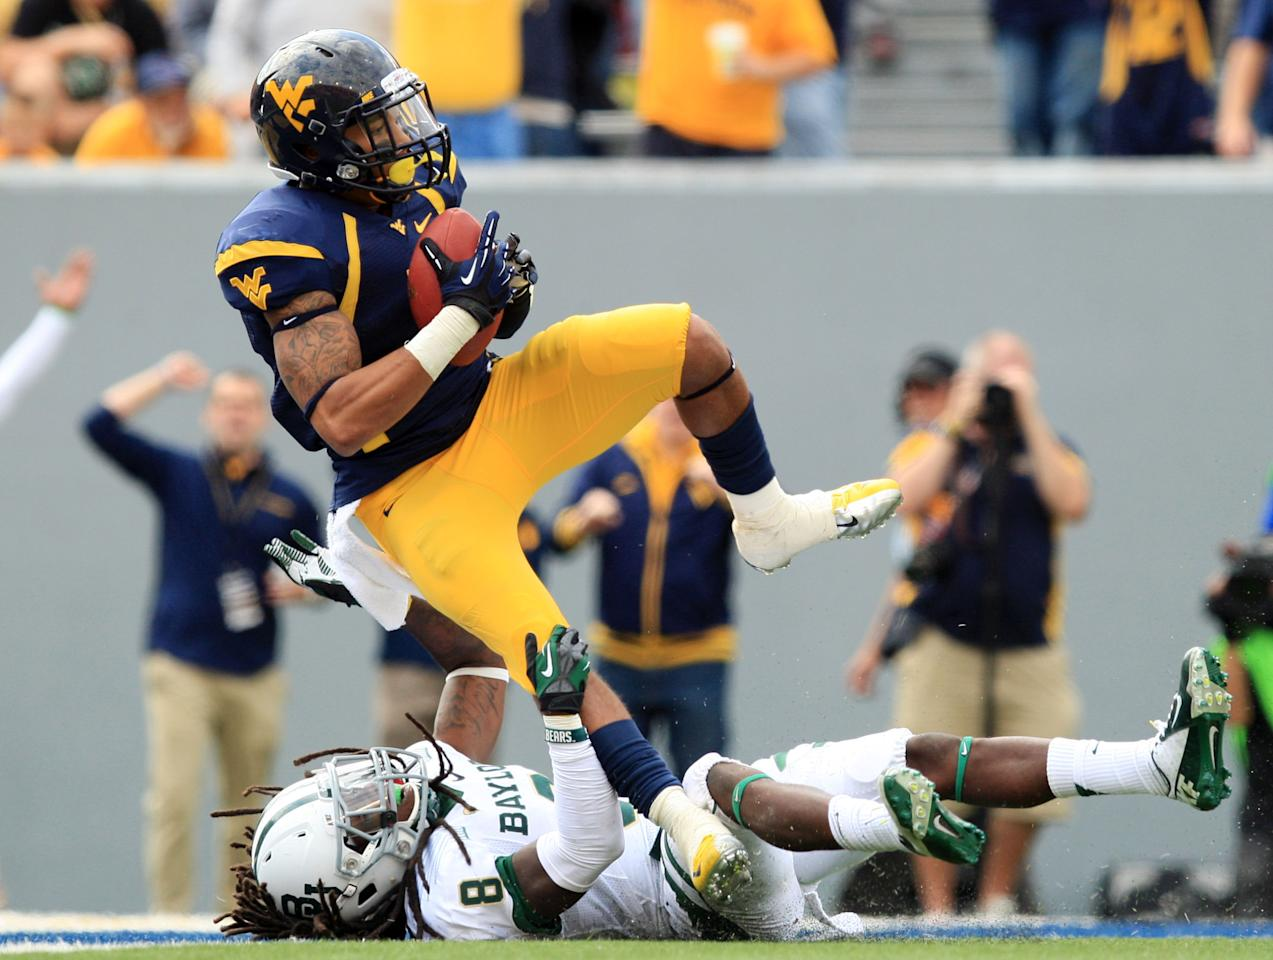 West Virginia's Stedman Bailey (3) is tackled in the endzone for a touchdown by Baylor's K.J. Morton (8) during their NCAA college football game in Morgantown, W.Va., Saturday, Sept. 29, 2012. (AP Photo/Christopher Jackson)